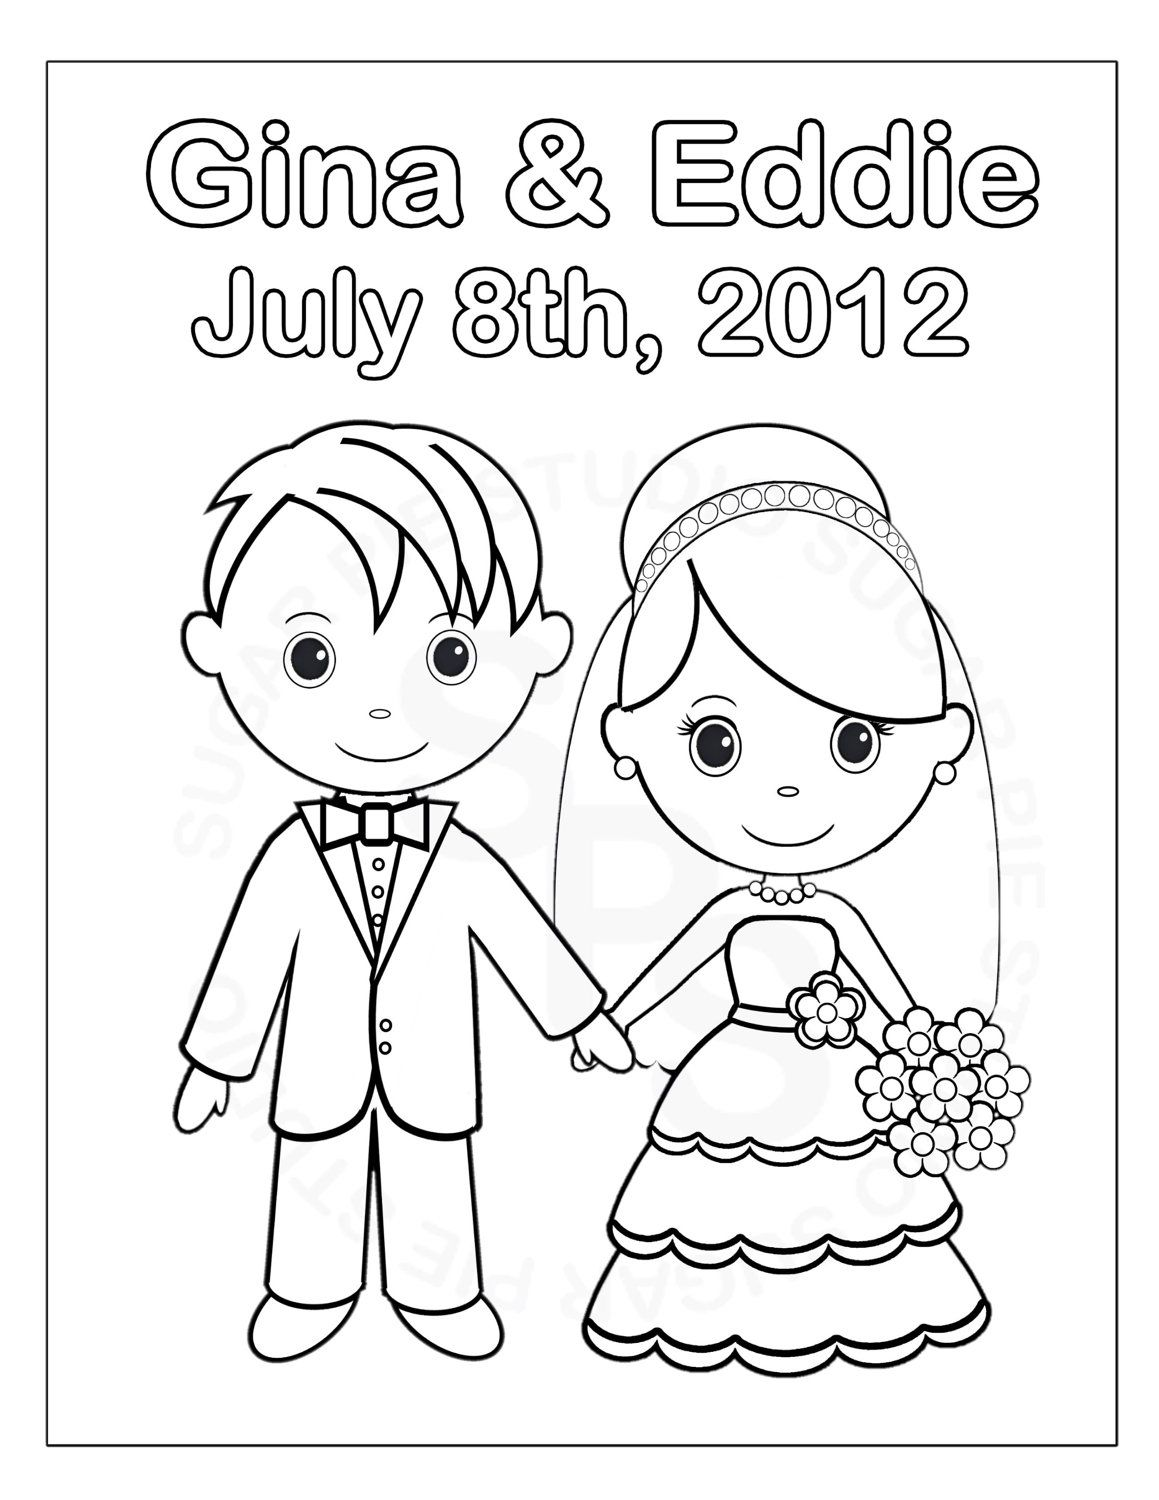 coloring wedding activities for kids printable personalized wedding coloring activity by kids activities coloring for wedding